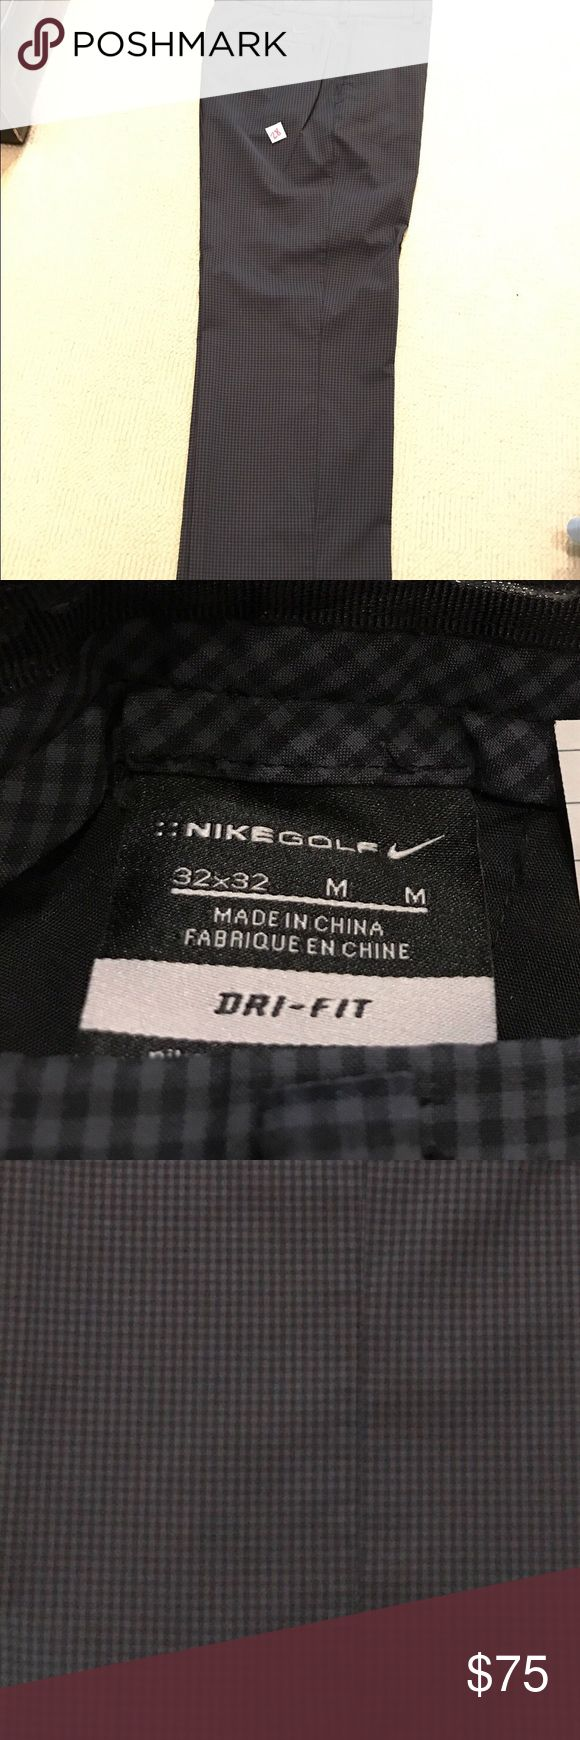 Mens Checkered Nike Golf Pants - Worn Once! great condition, professional look!! 32x 32 Nike Pants